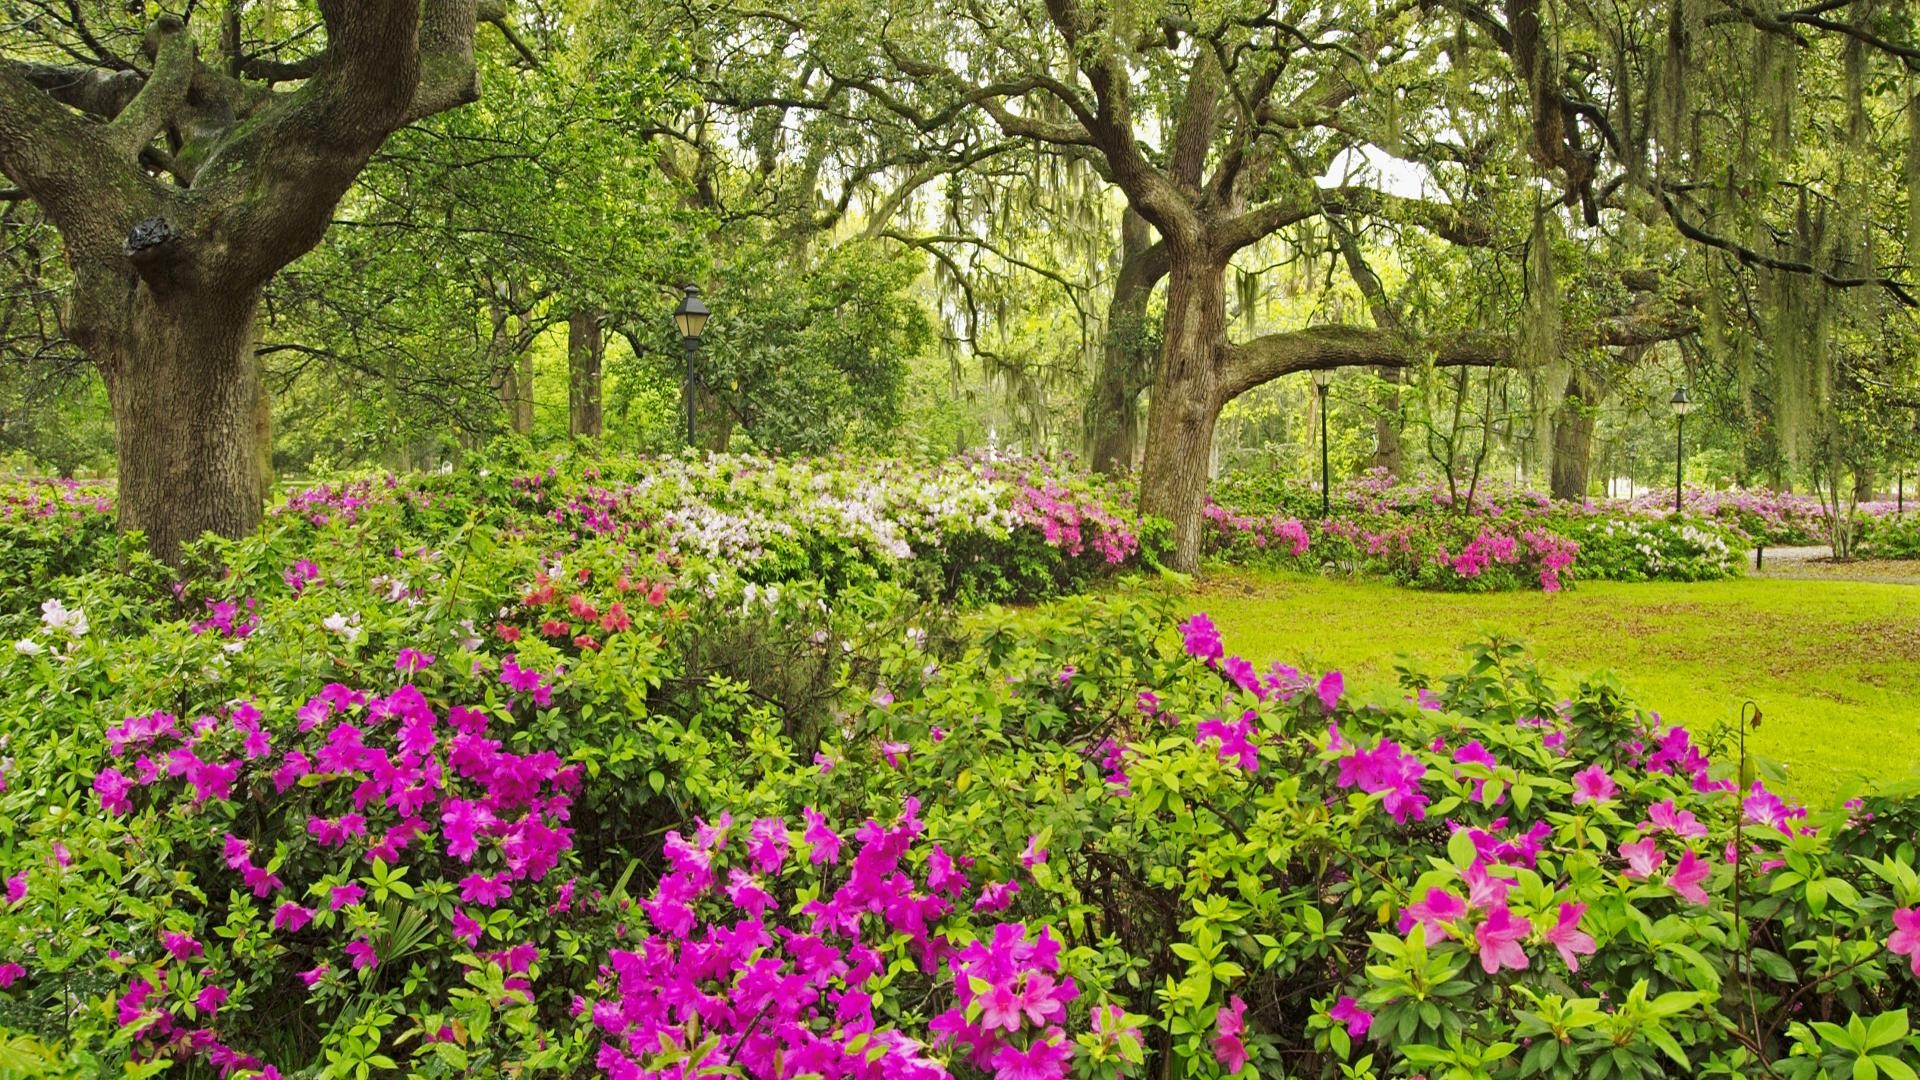 Hd wallpaper garden - Flower Garden Hd Wallpaper